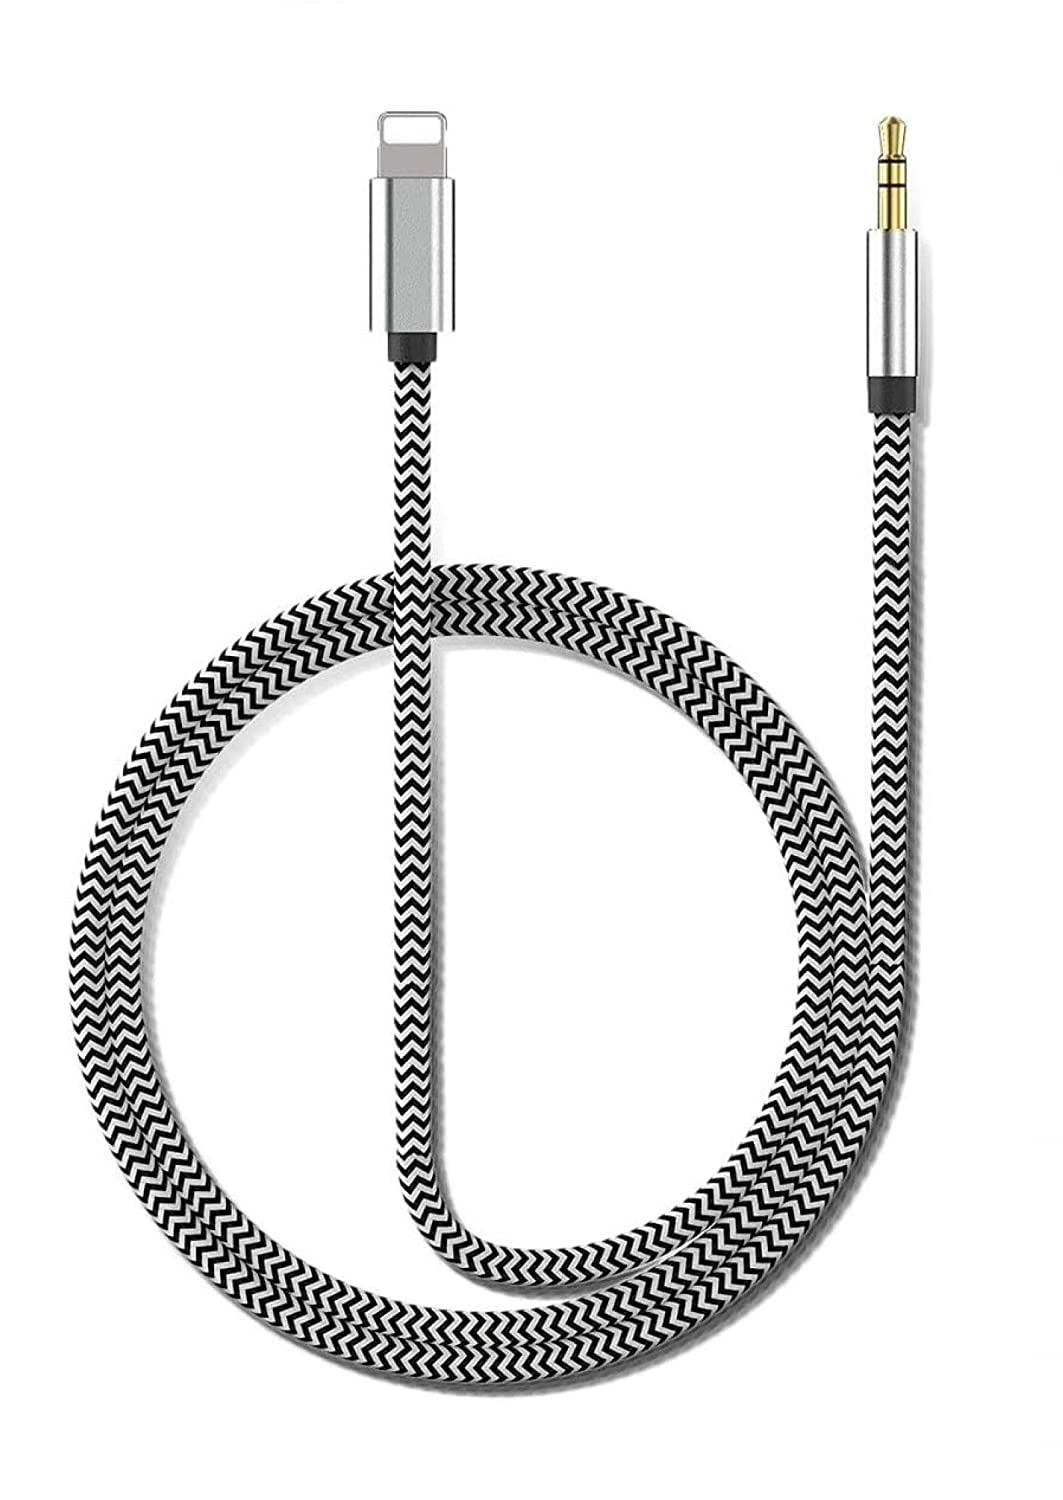 [Apple Mfi Certified] Lightning to 3.5mm Audio Cable,for iPhone 3.5 mm Headphone Jack Adapter Nylon Braided Aux Cord for iPhone 12/11/XS/XR/X/iPad to Car/Home Stereo, Speaker, Headphone - 3.3ft Silver